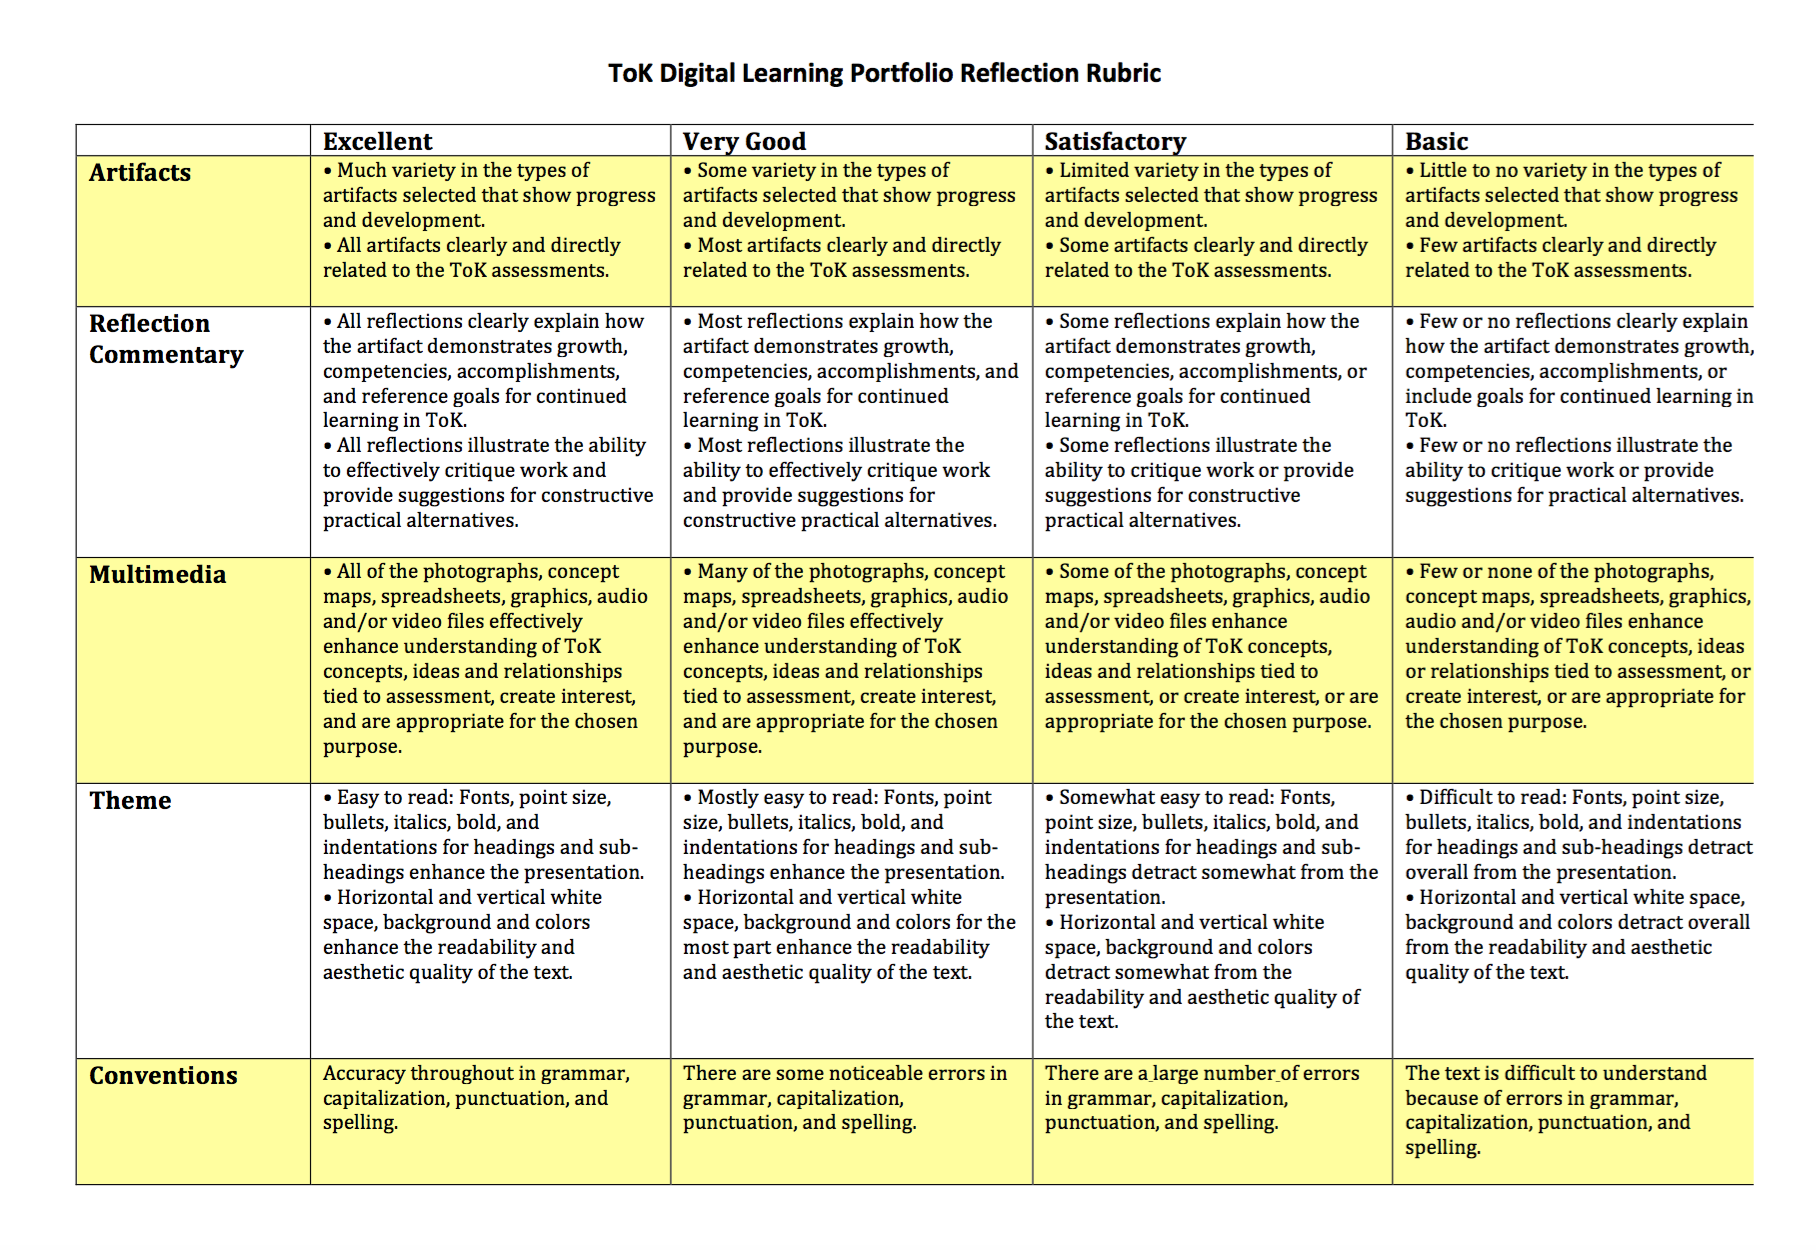 dlp evaluation rubric tok digital learning portfolio for dlp evaluation rubric